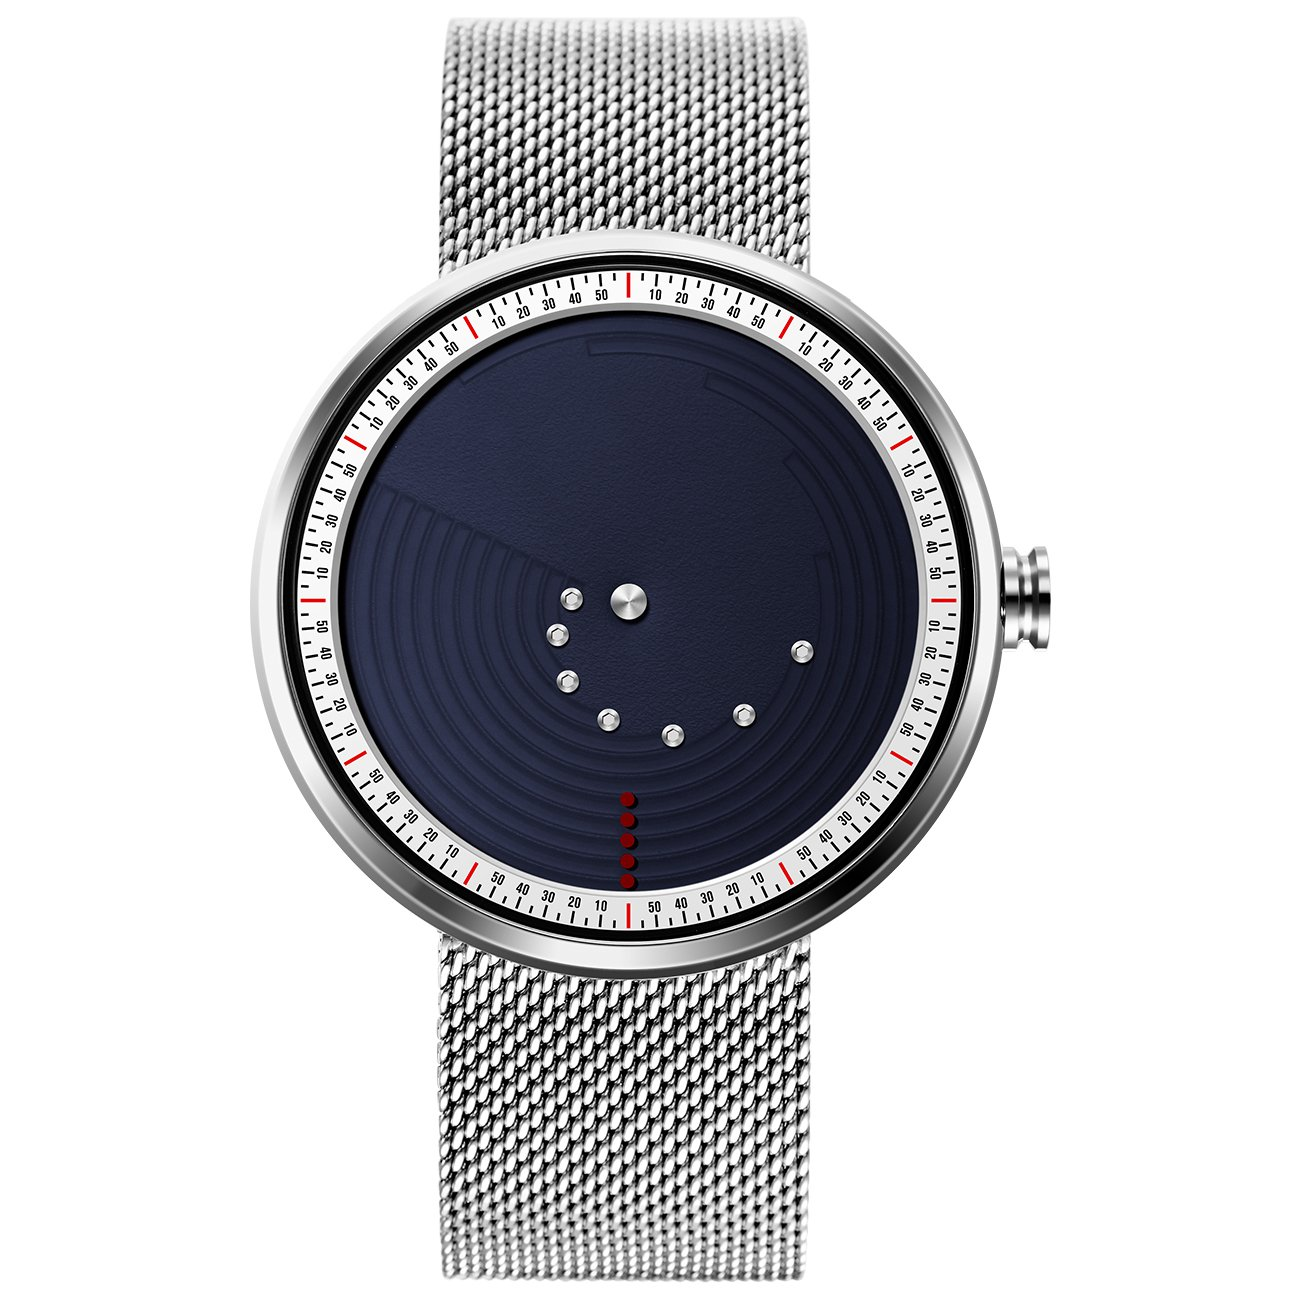 SINOBI Stylish Men's Quartz Watch with Blue Unique Dial Design Minute/Hour Display and Elegant Milanese Mesh Band by SINOBI